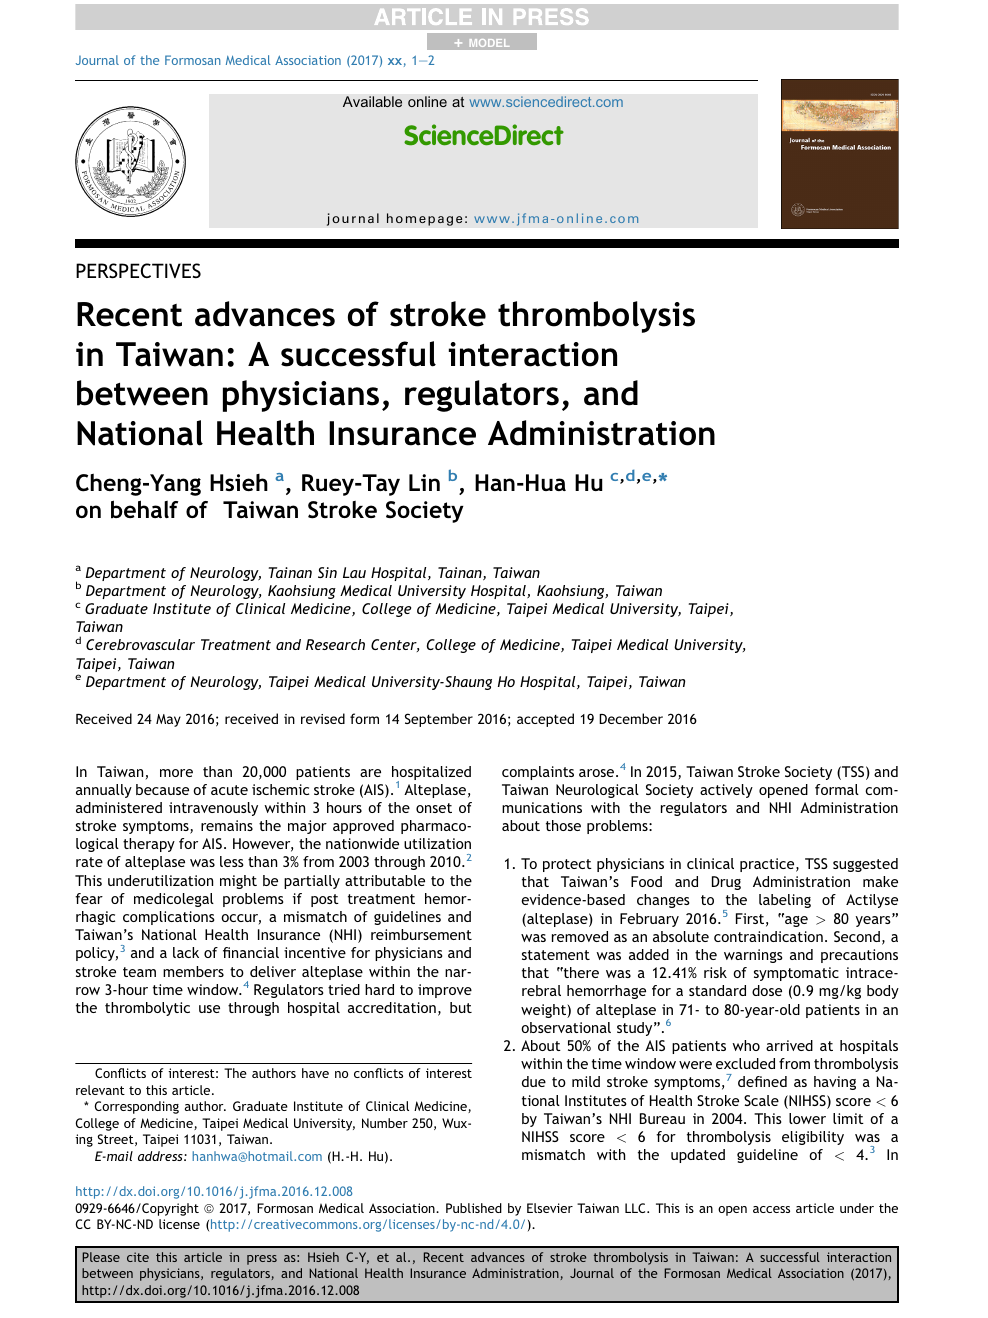 Recent advances of stroke thrombolysis in Taiwan: A